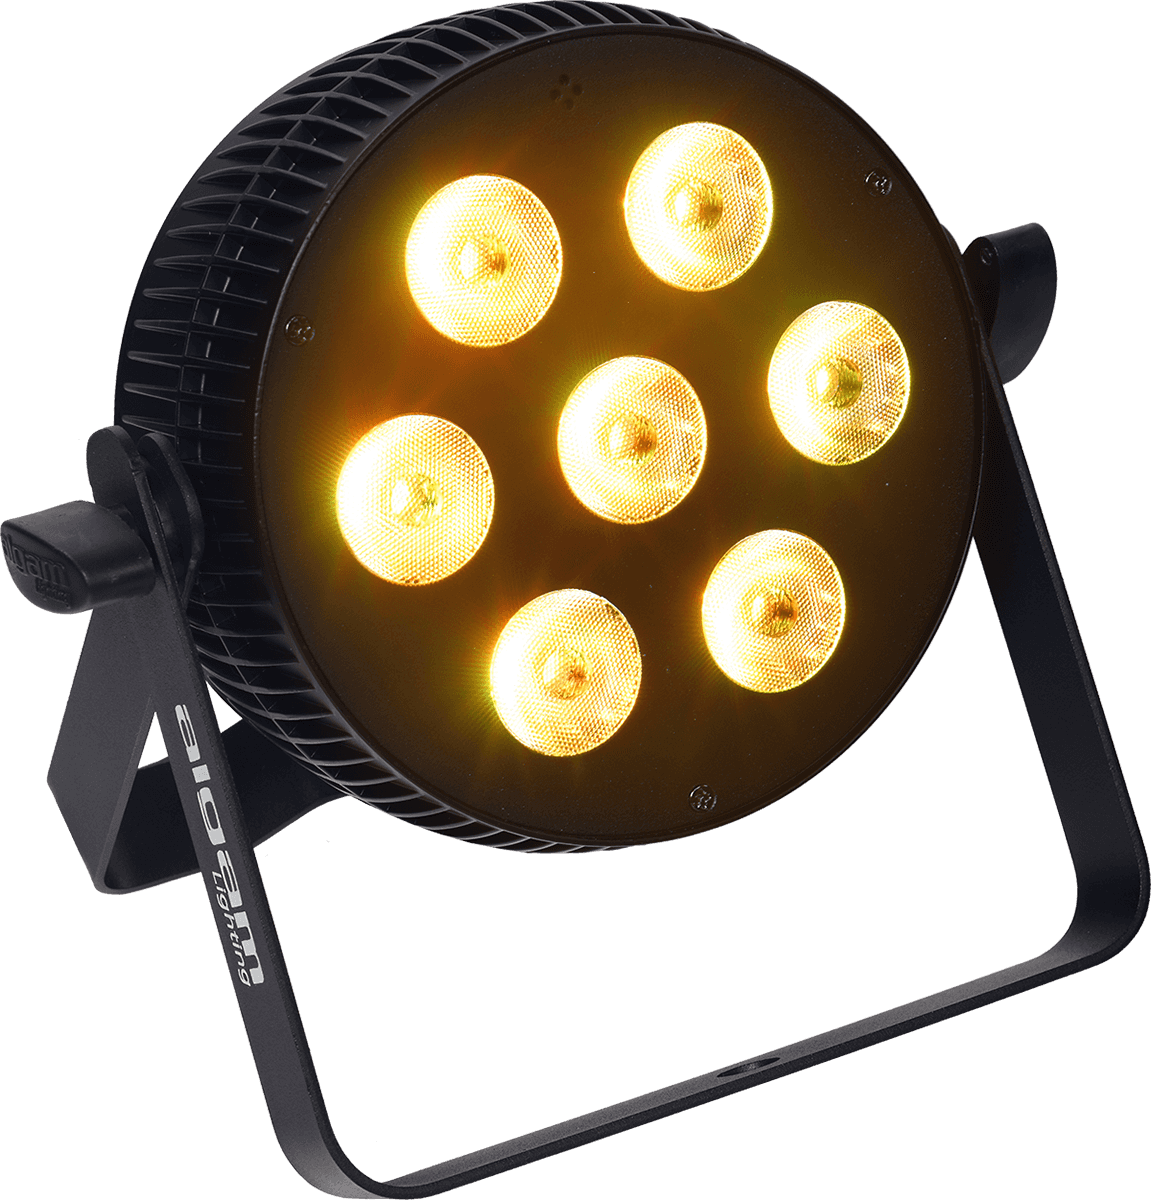 ALGAM LIGHTING SLIM PAR 710 QUAD